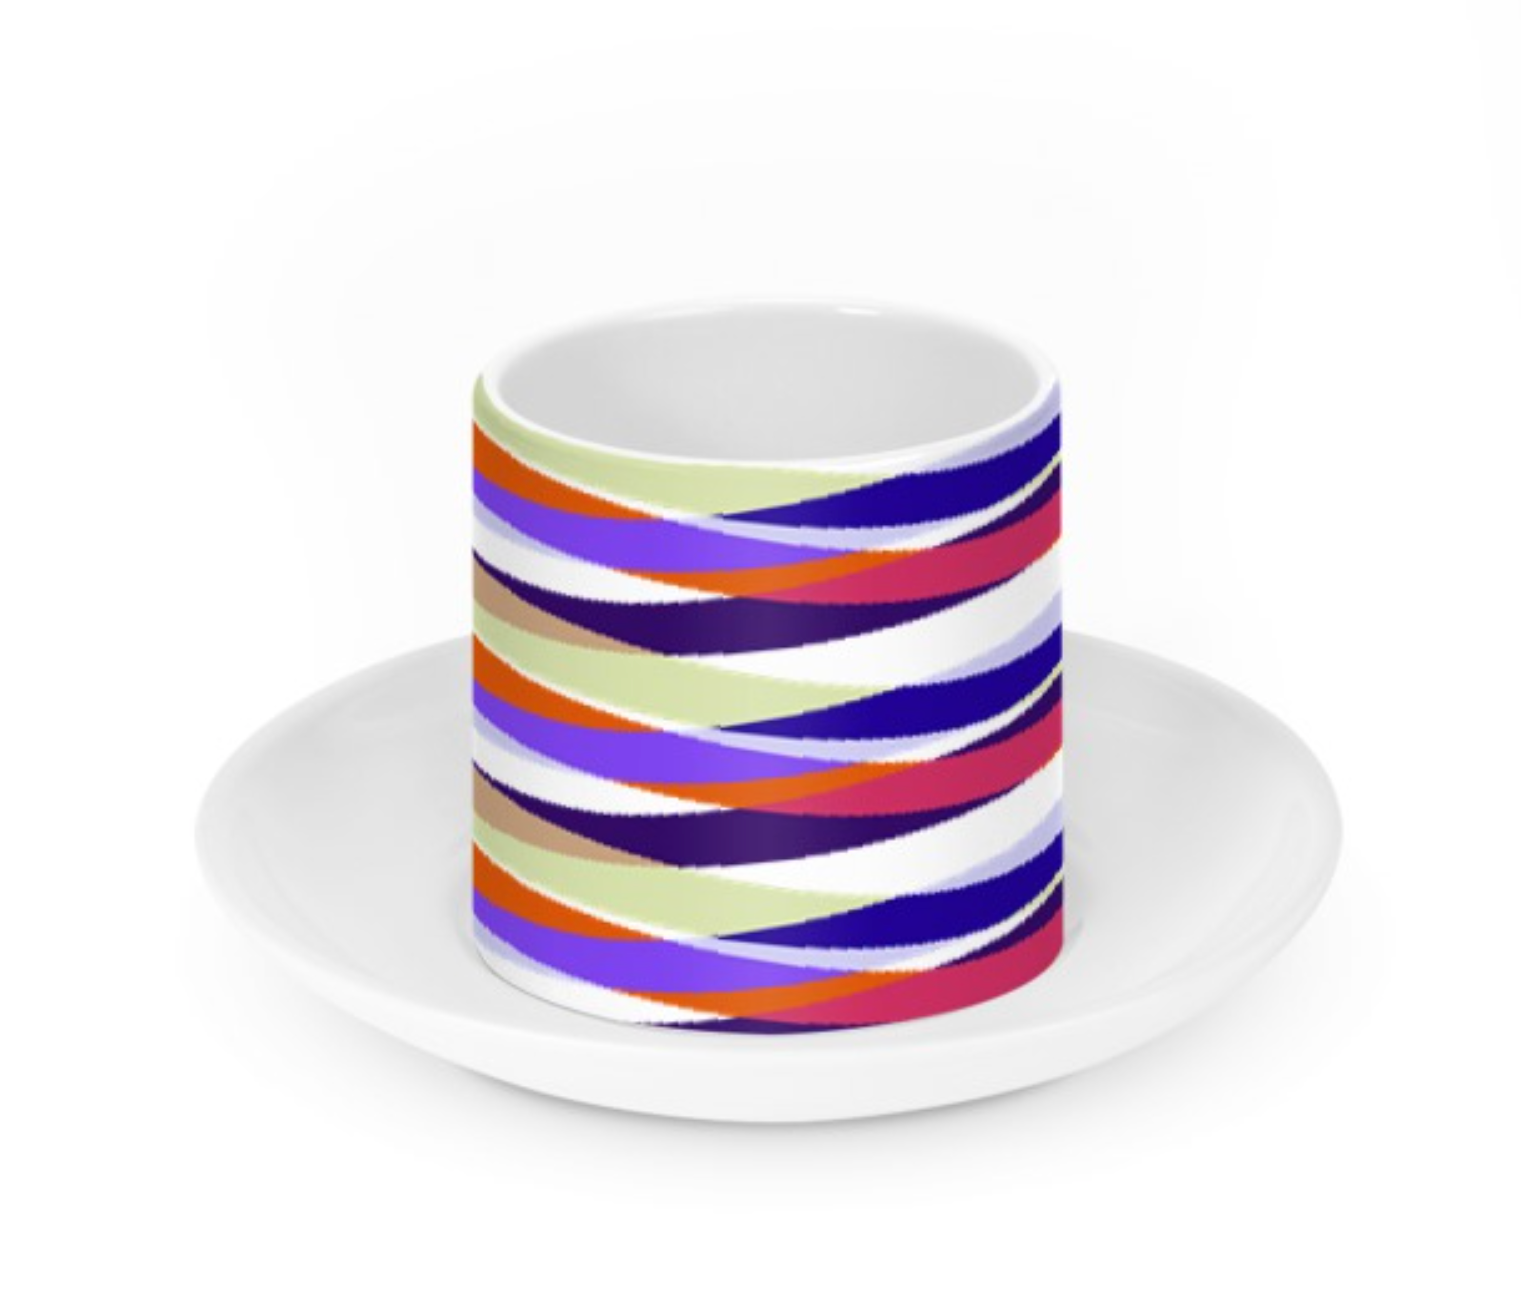 Oslo Espresso Cup and Saucer